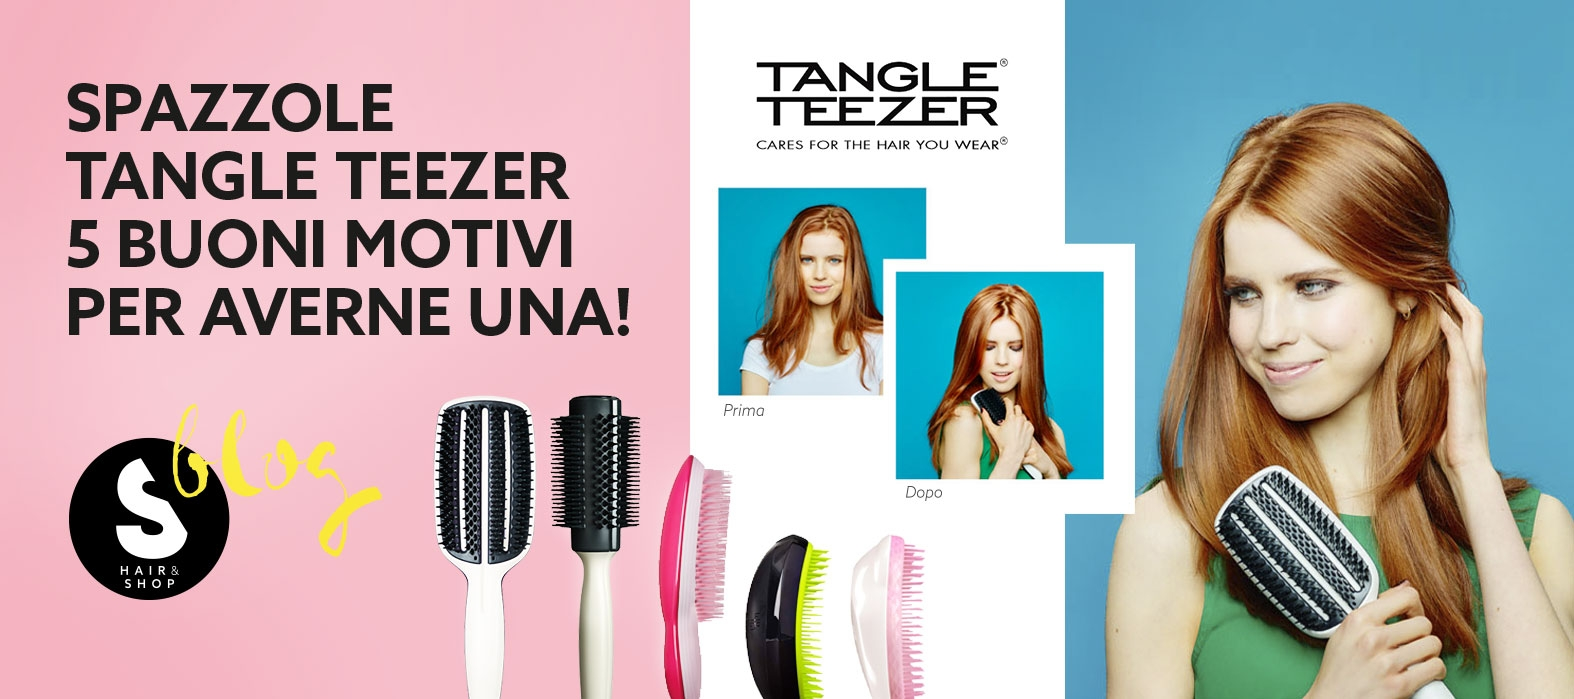 Spazzole Tangle Teezer